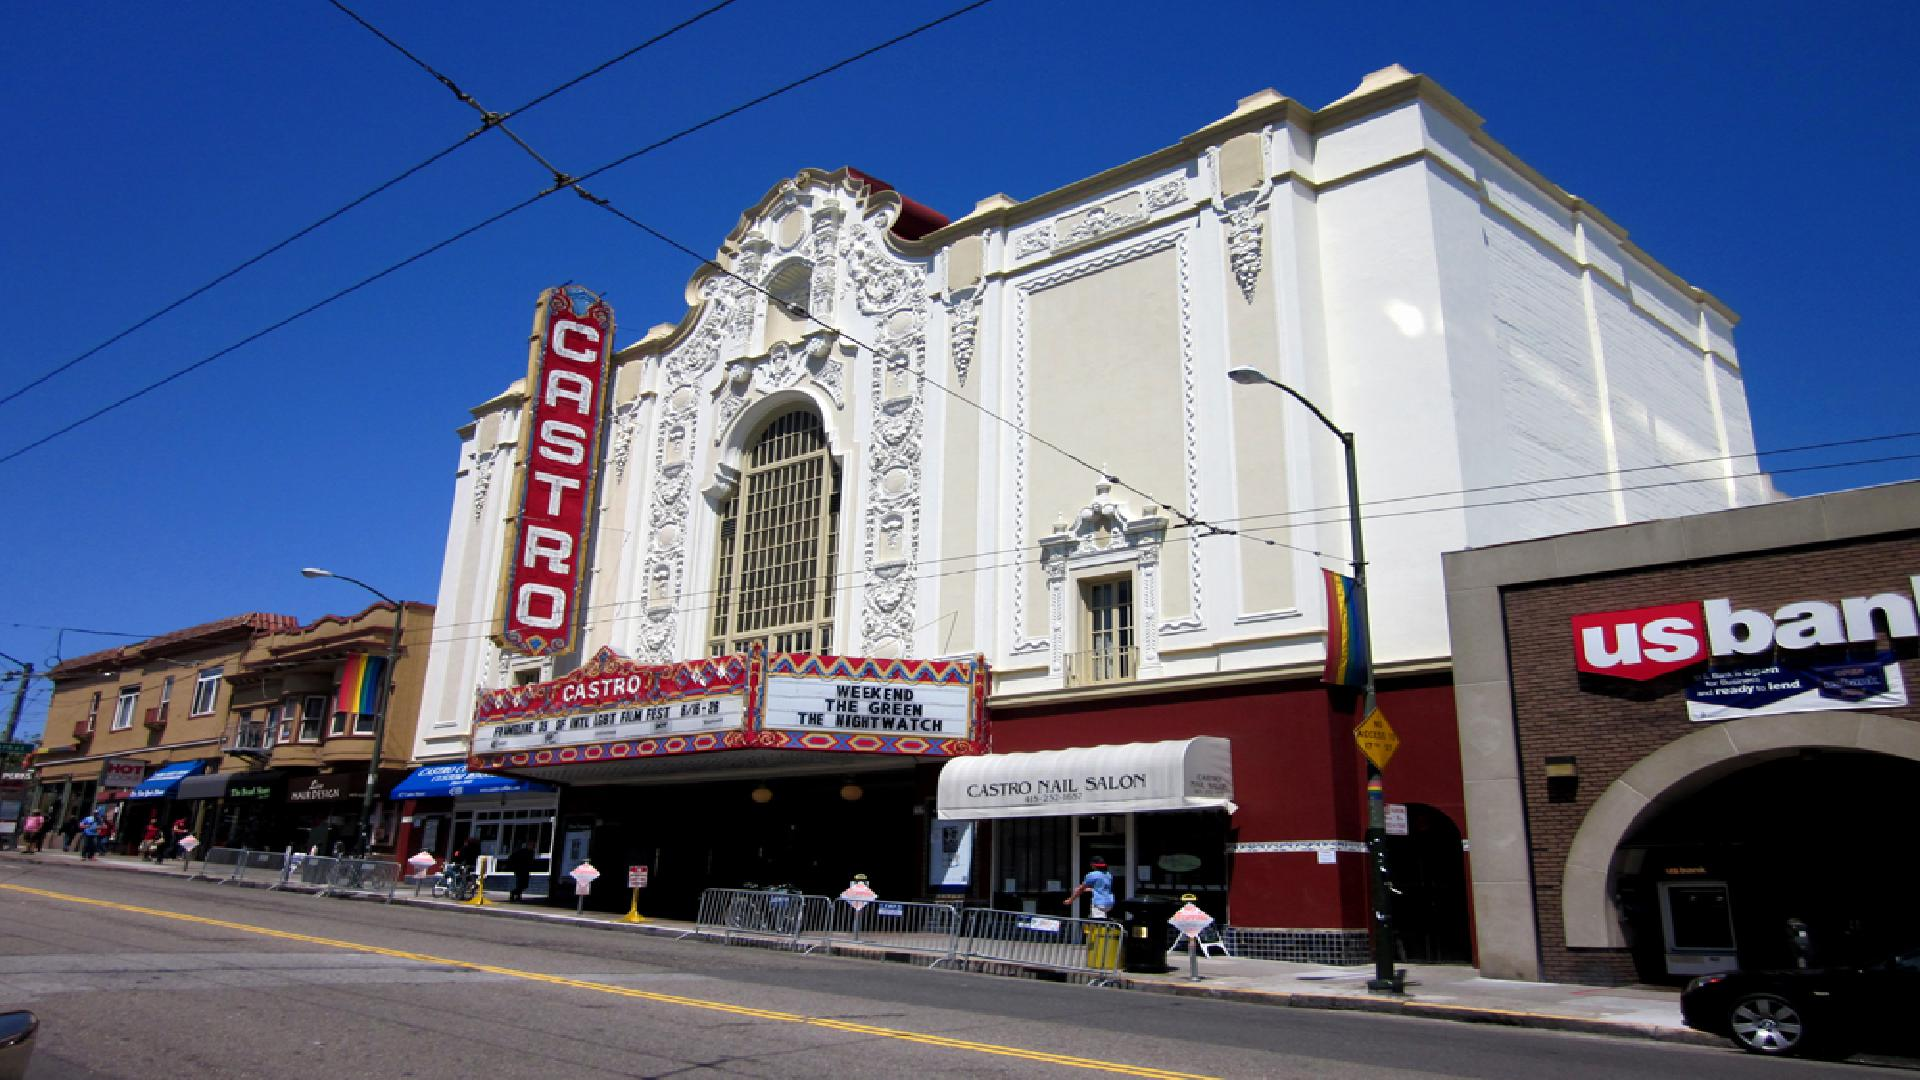 What to see in San Francisco: Castro Theatre